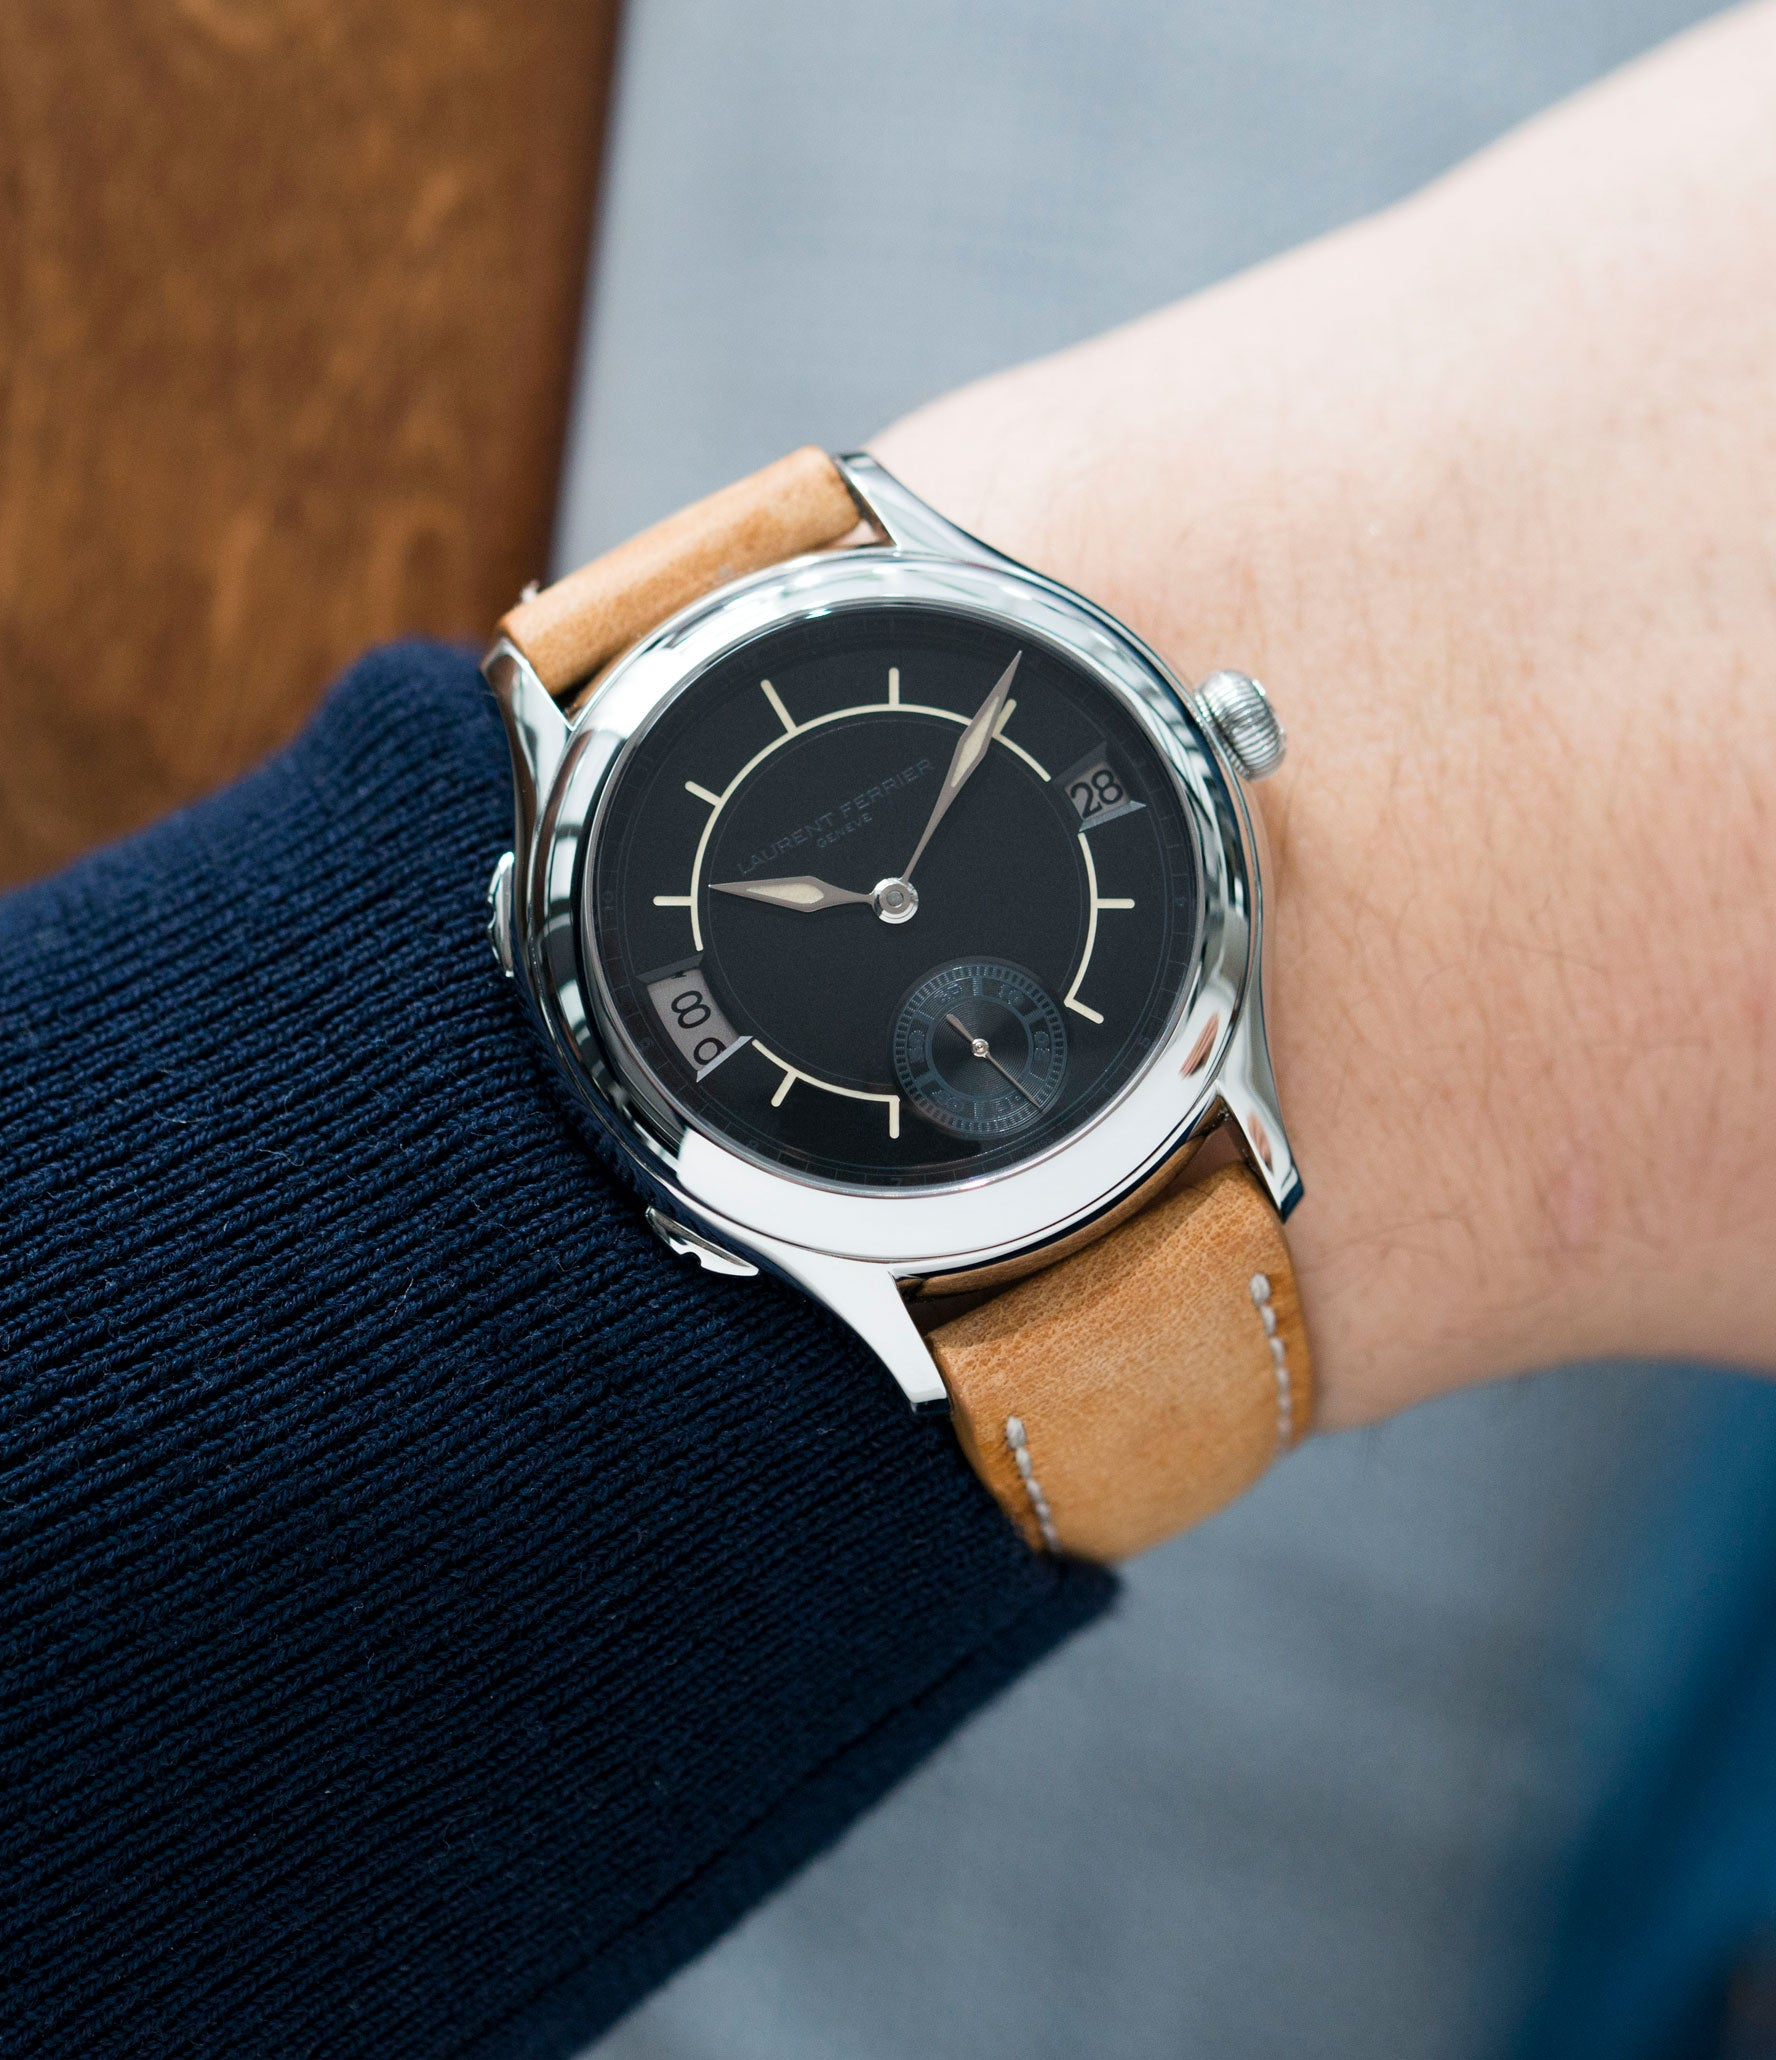 on the wrist Laurent Ferrier Galet Traveller Boreal steel dual-timezone black dial dress watch for sale online at A Collected Man London approved seller of pre-owned Laurent Ferrier independent watchmakers